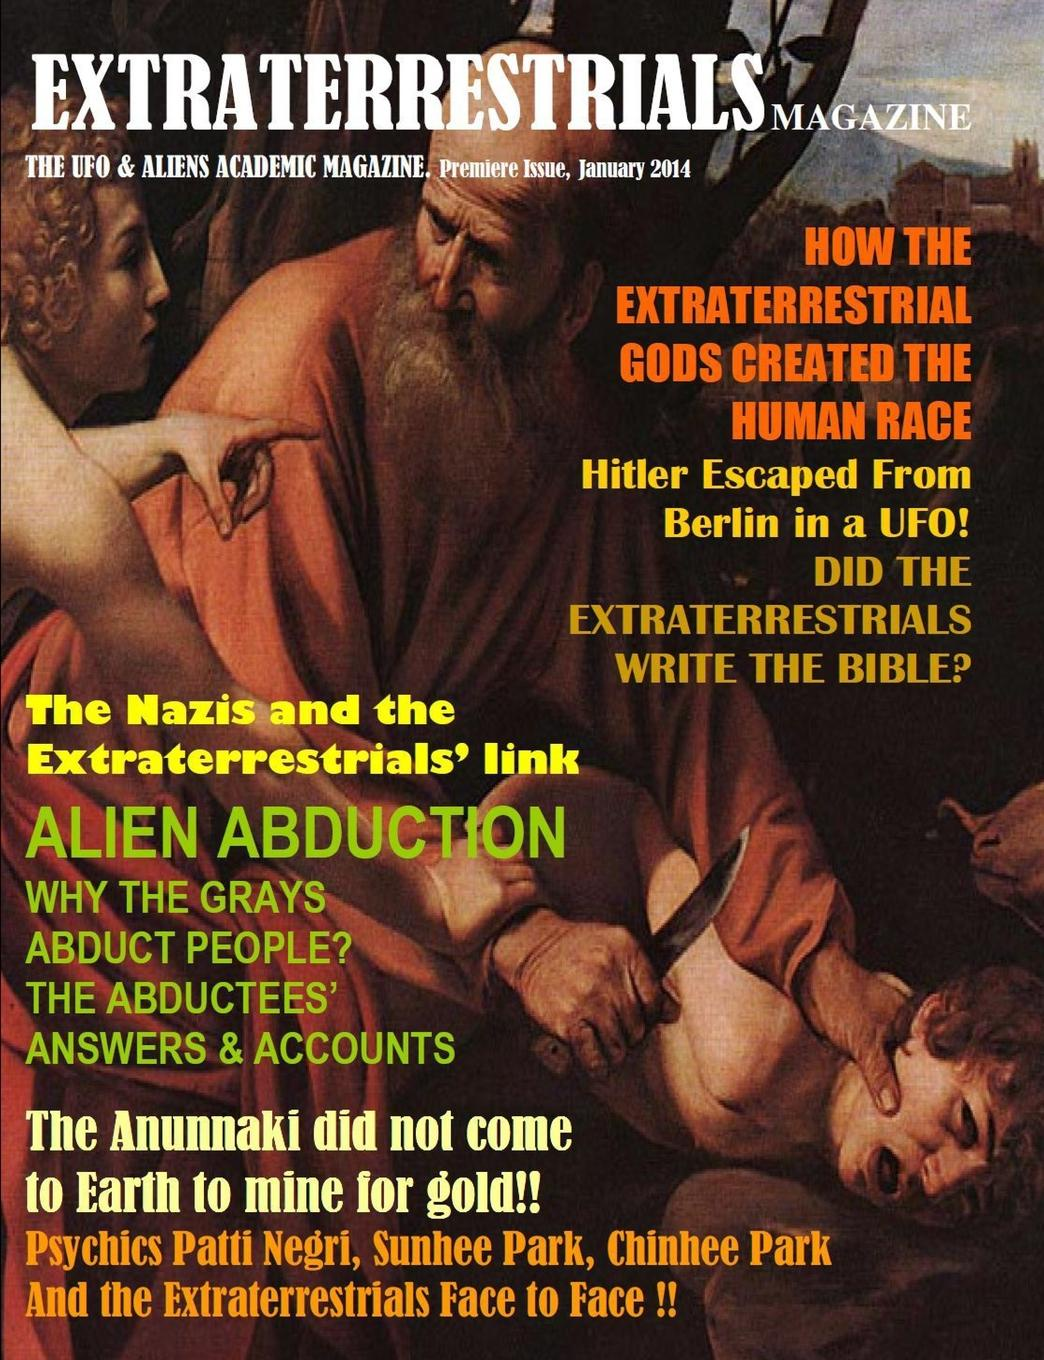 Maximillien De Lafayette Extraterrestrials Magazine Economy Edition. January 2014 Issue hoodz dvd magazine issue 1